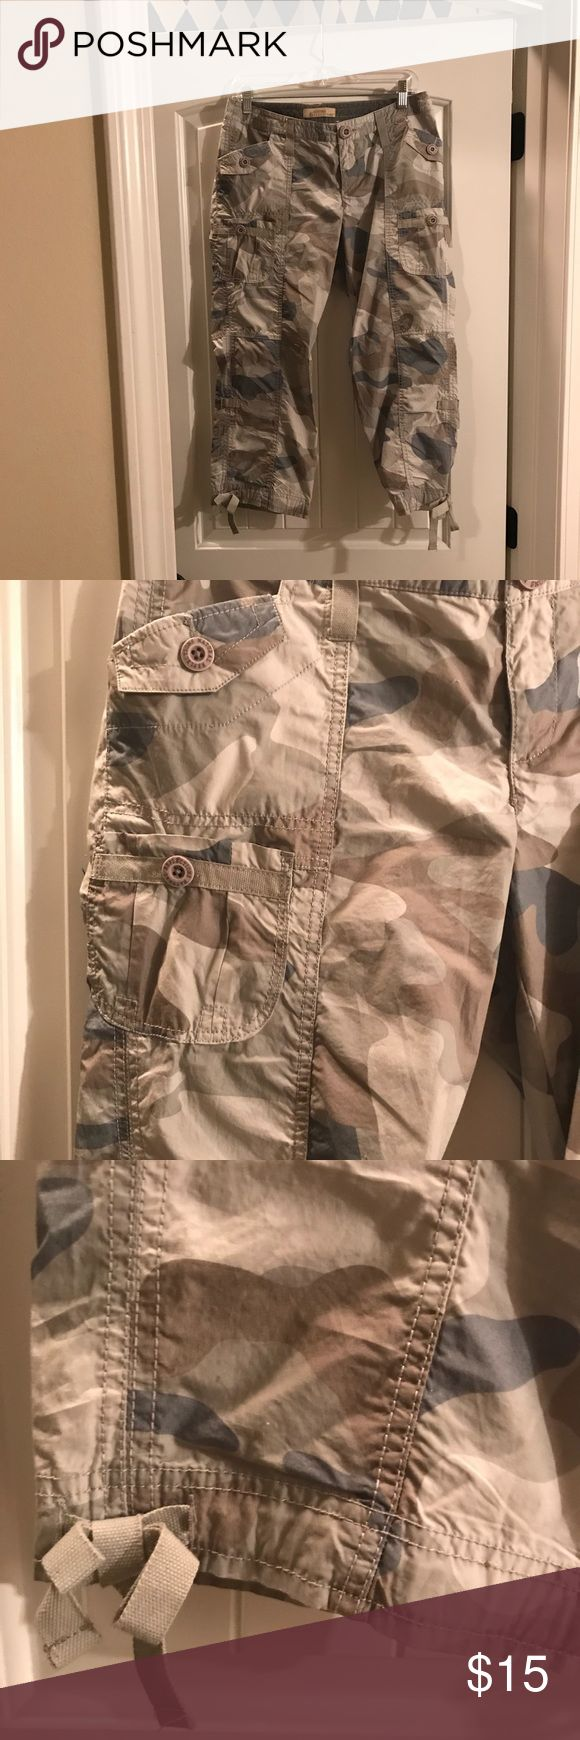 """Camouflage Natural Reflections cargo Capri pants 4 Camouflage Natural Reflections cargo Capri pants size 4. Purchased from Bass Pro Shop and worn once. 30"""" long Pants Capris"""